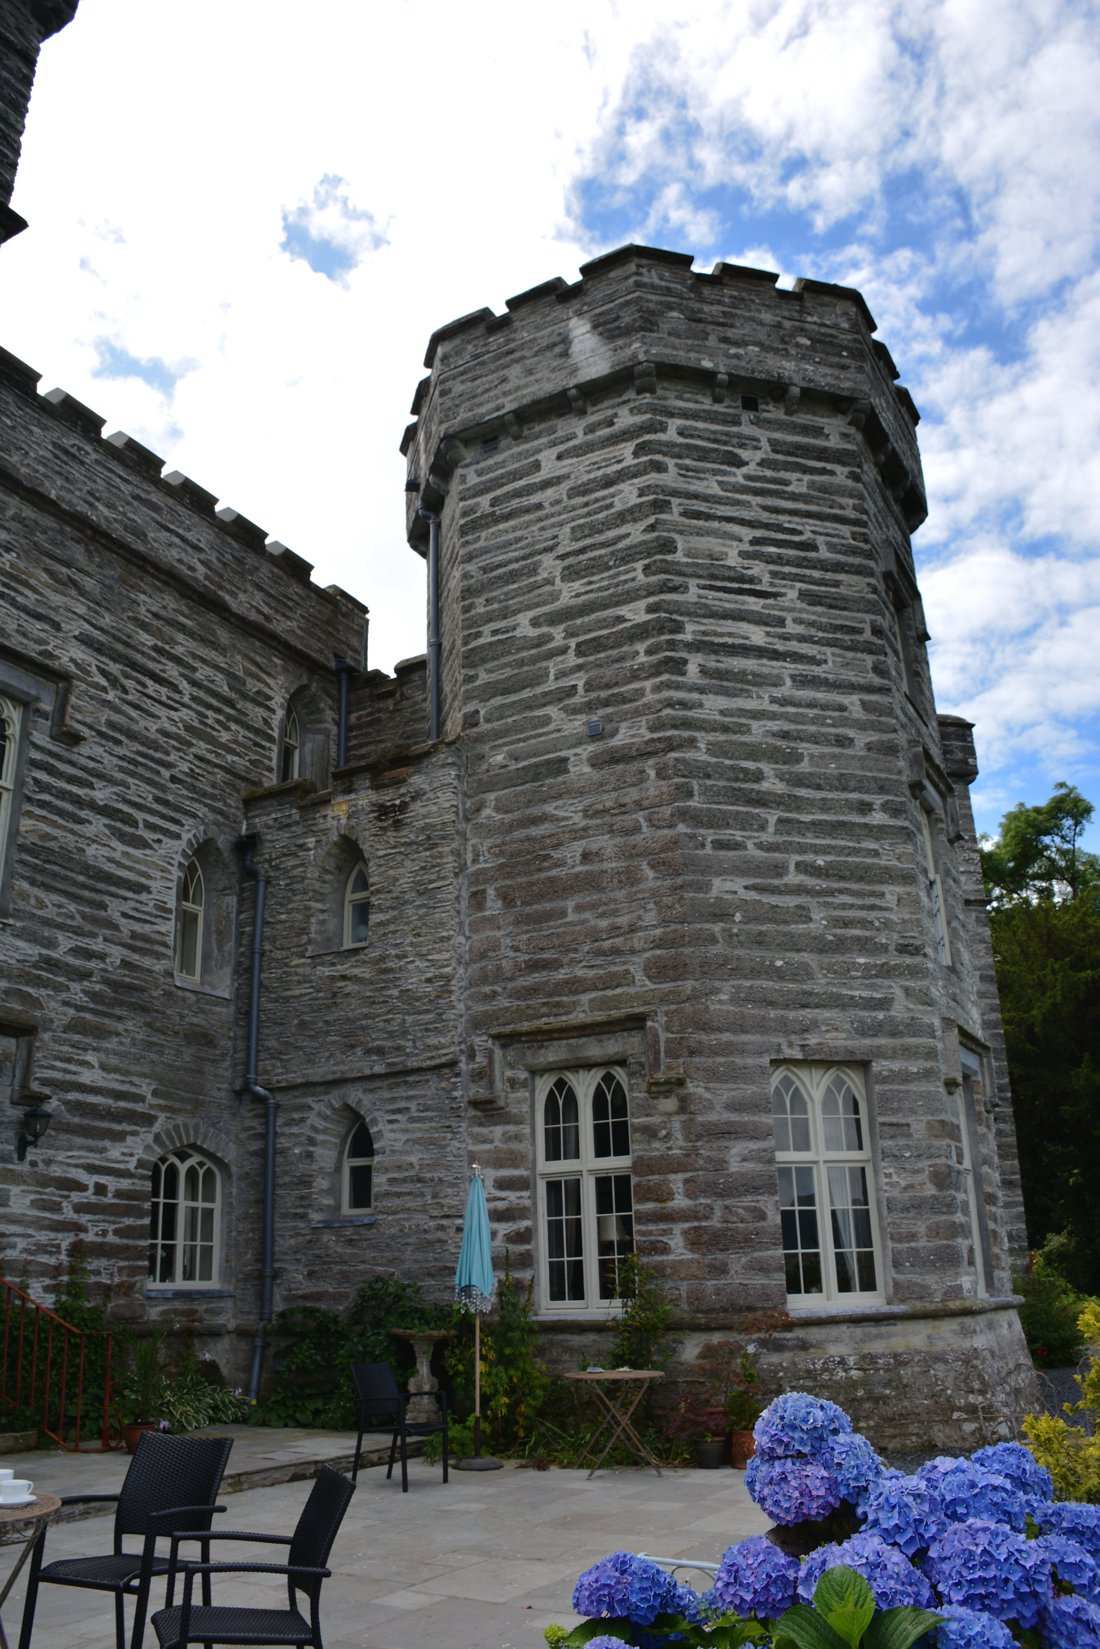 The Castle In The Mountains... Wales, UK (19)